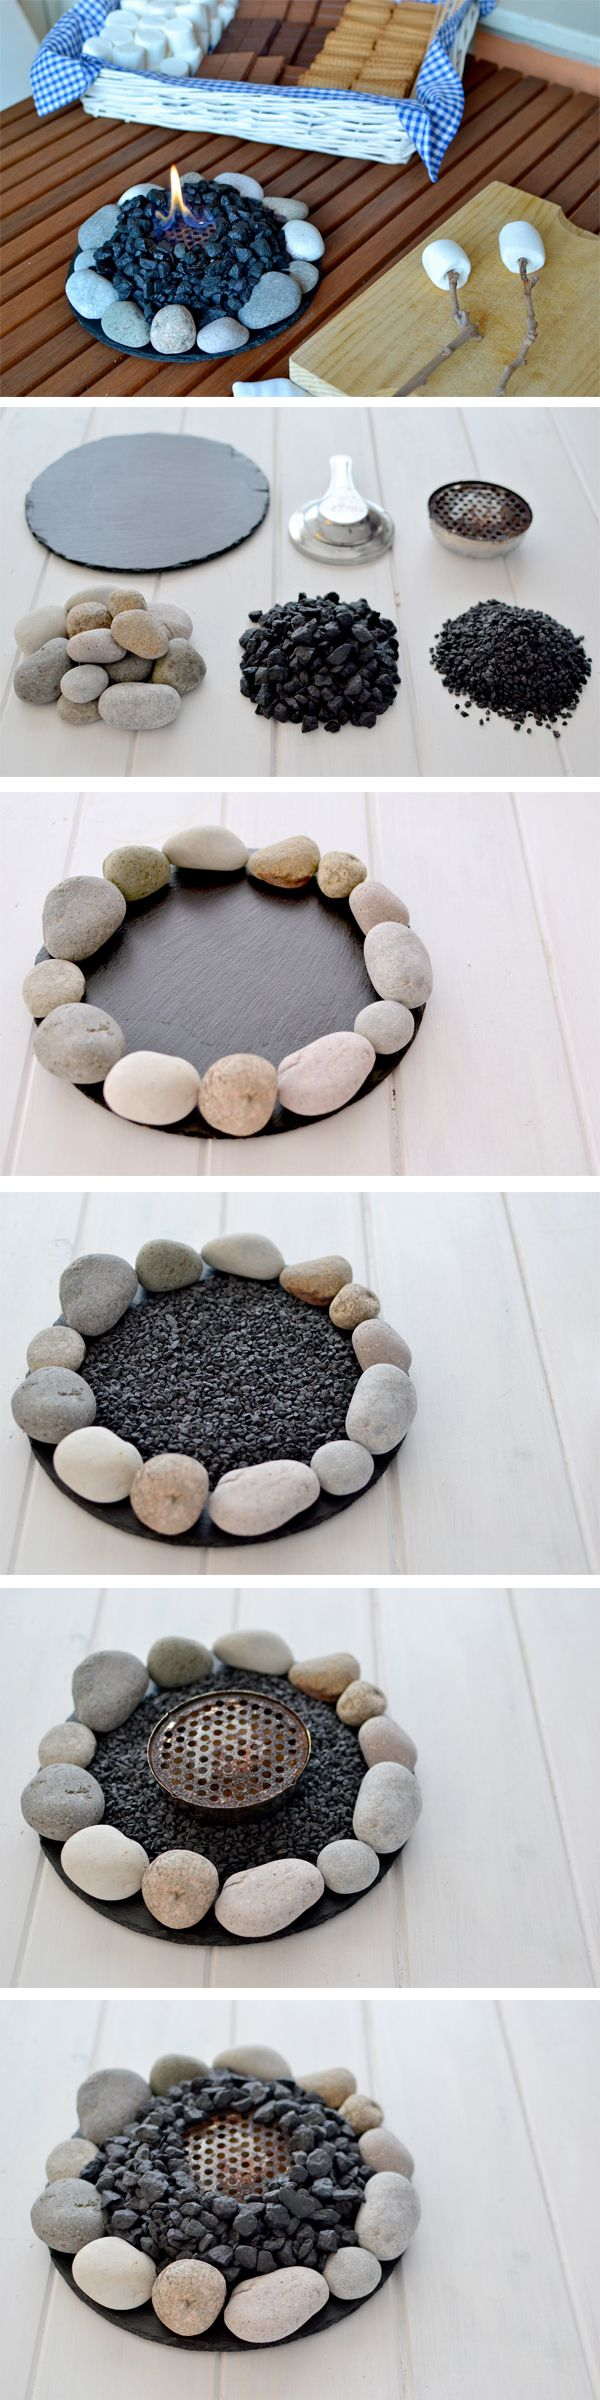 37-diy-fire-pit-ideas